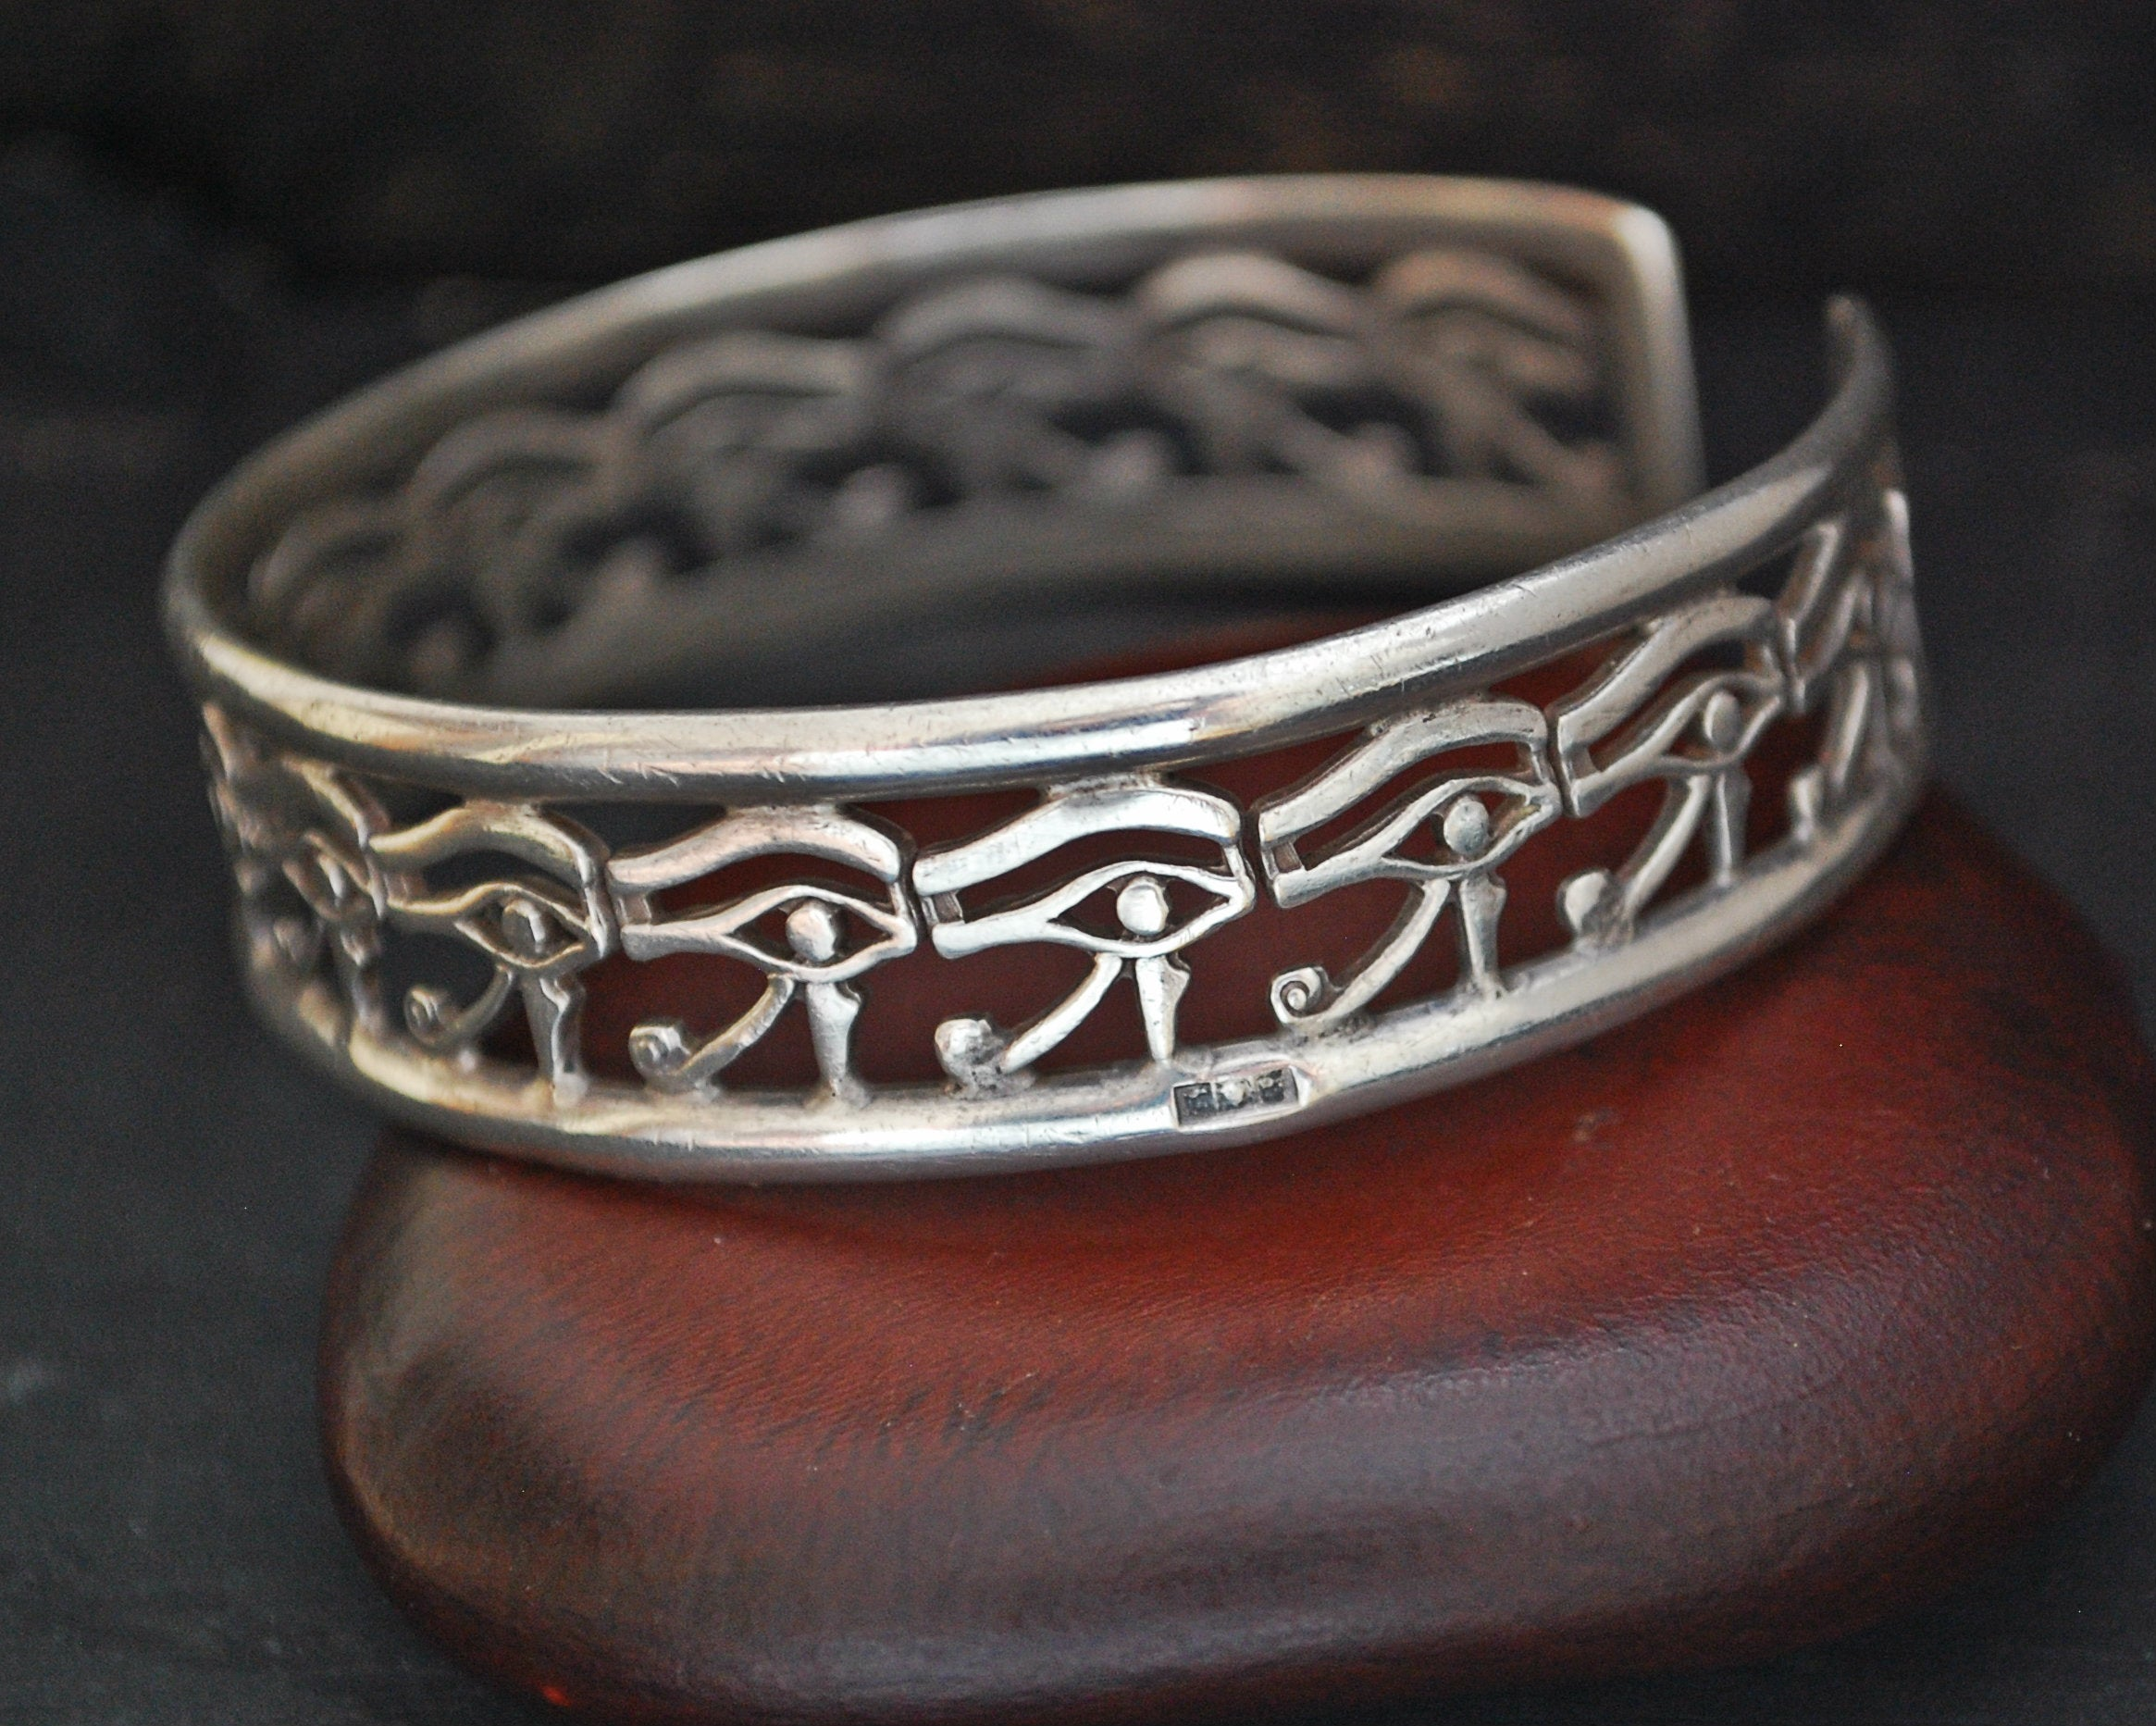 Egyptian Eye of Horus Cuff Bracelet